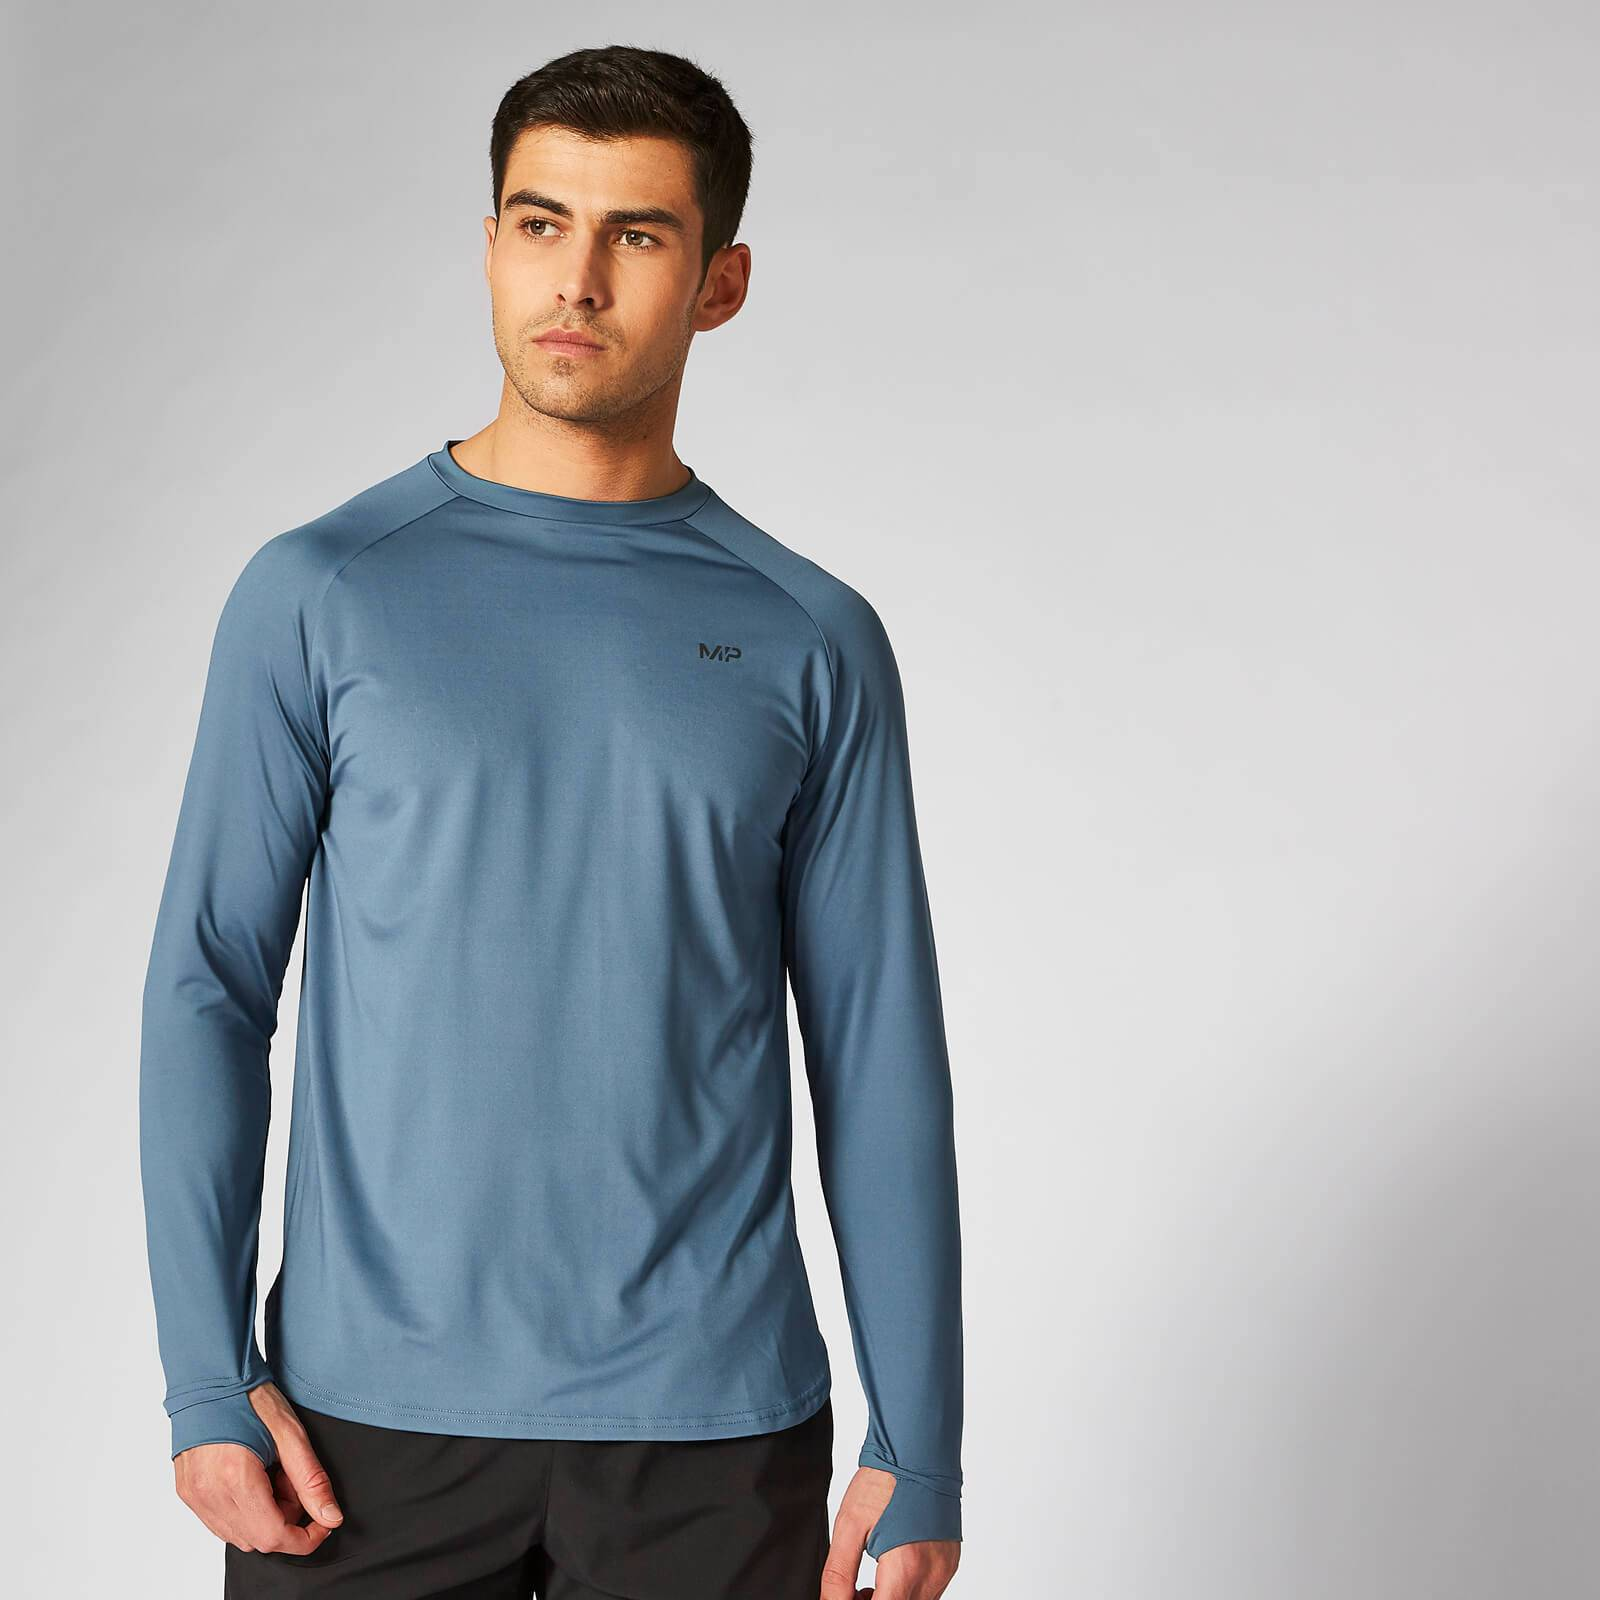 Myprotein Dry-Tech Infinity Long-Sleeve T-Shirt - Cadet Blue - M